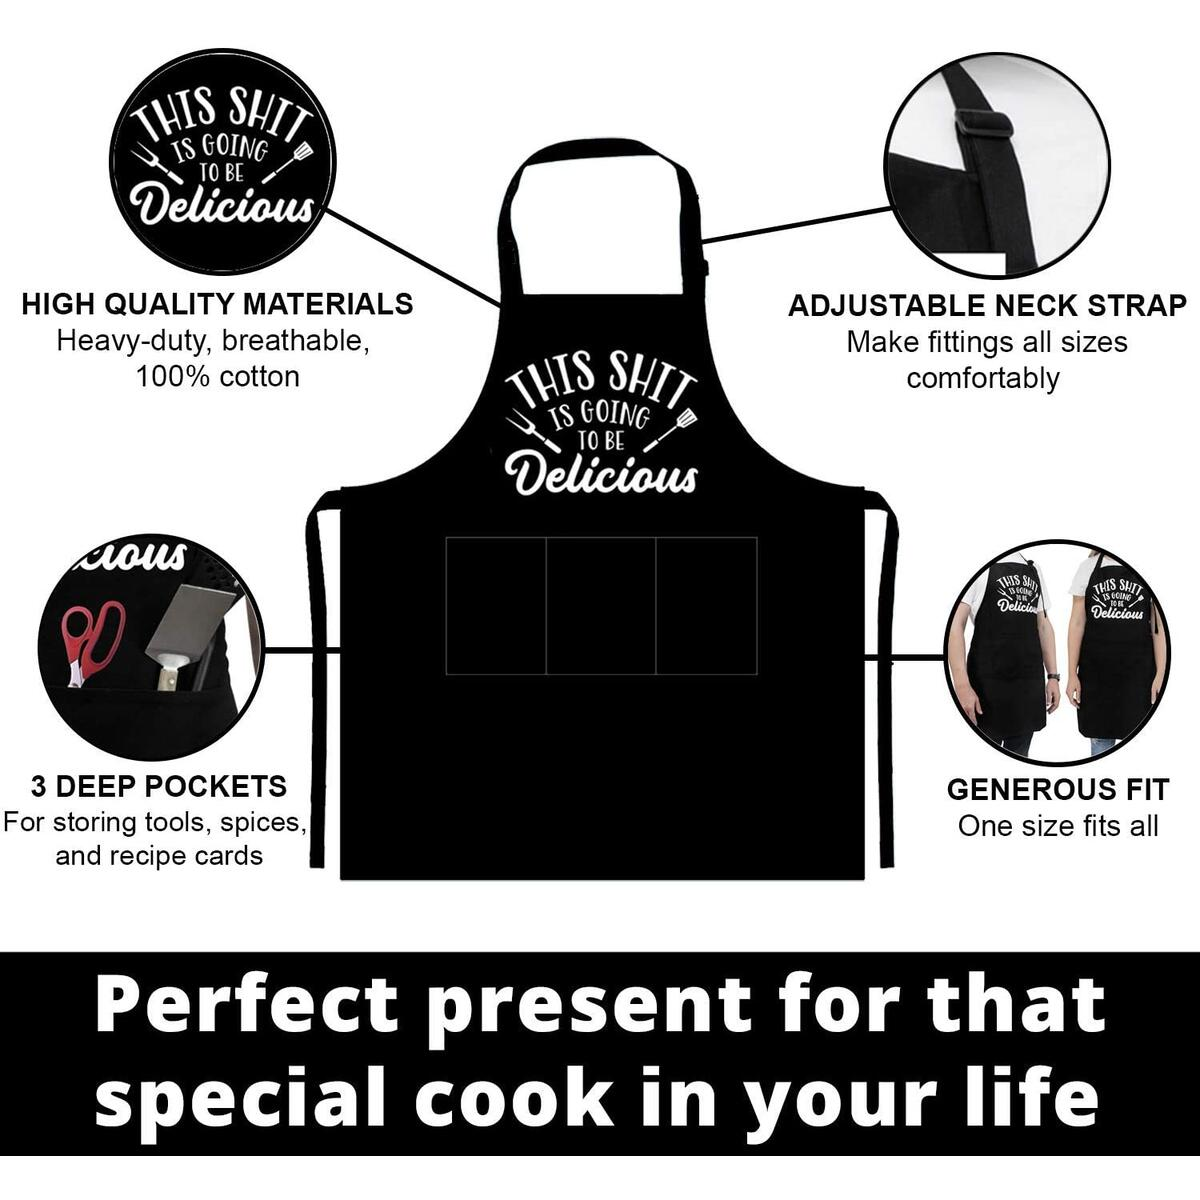 Funny Aprons for Men, Women with Pockets for Grill Cooking BBQ Kitchen Chef Apron Gifts for Men, Women - Birthday Gifts for Dad, Mom, Boyfriend, Him, Her, Husband, Wife